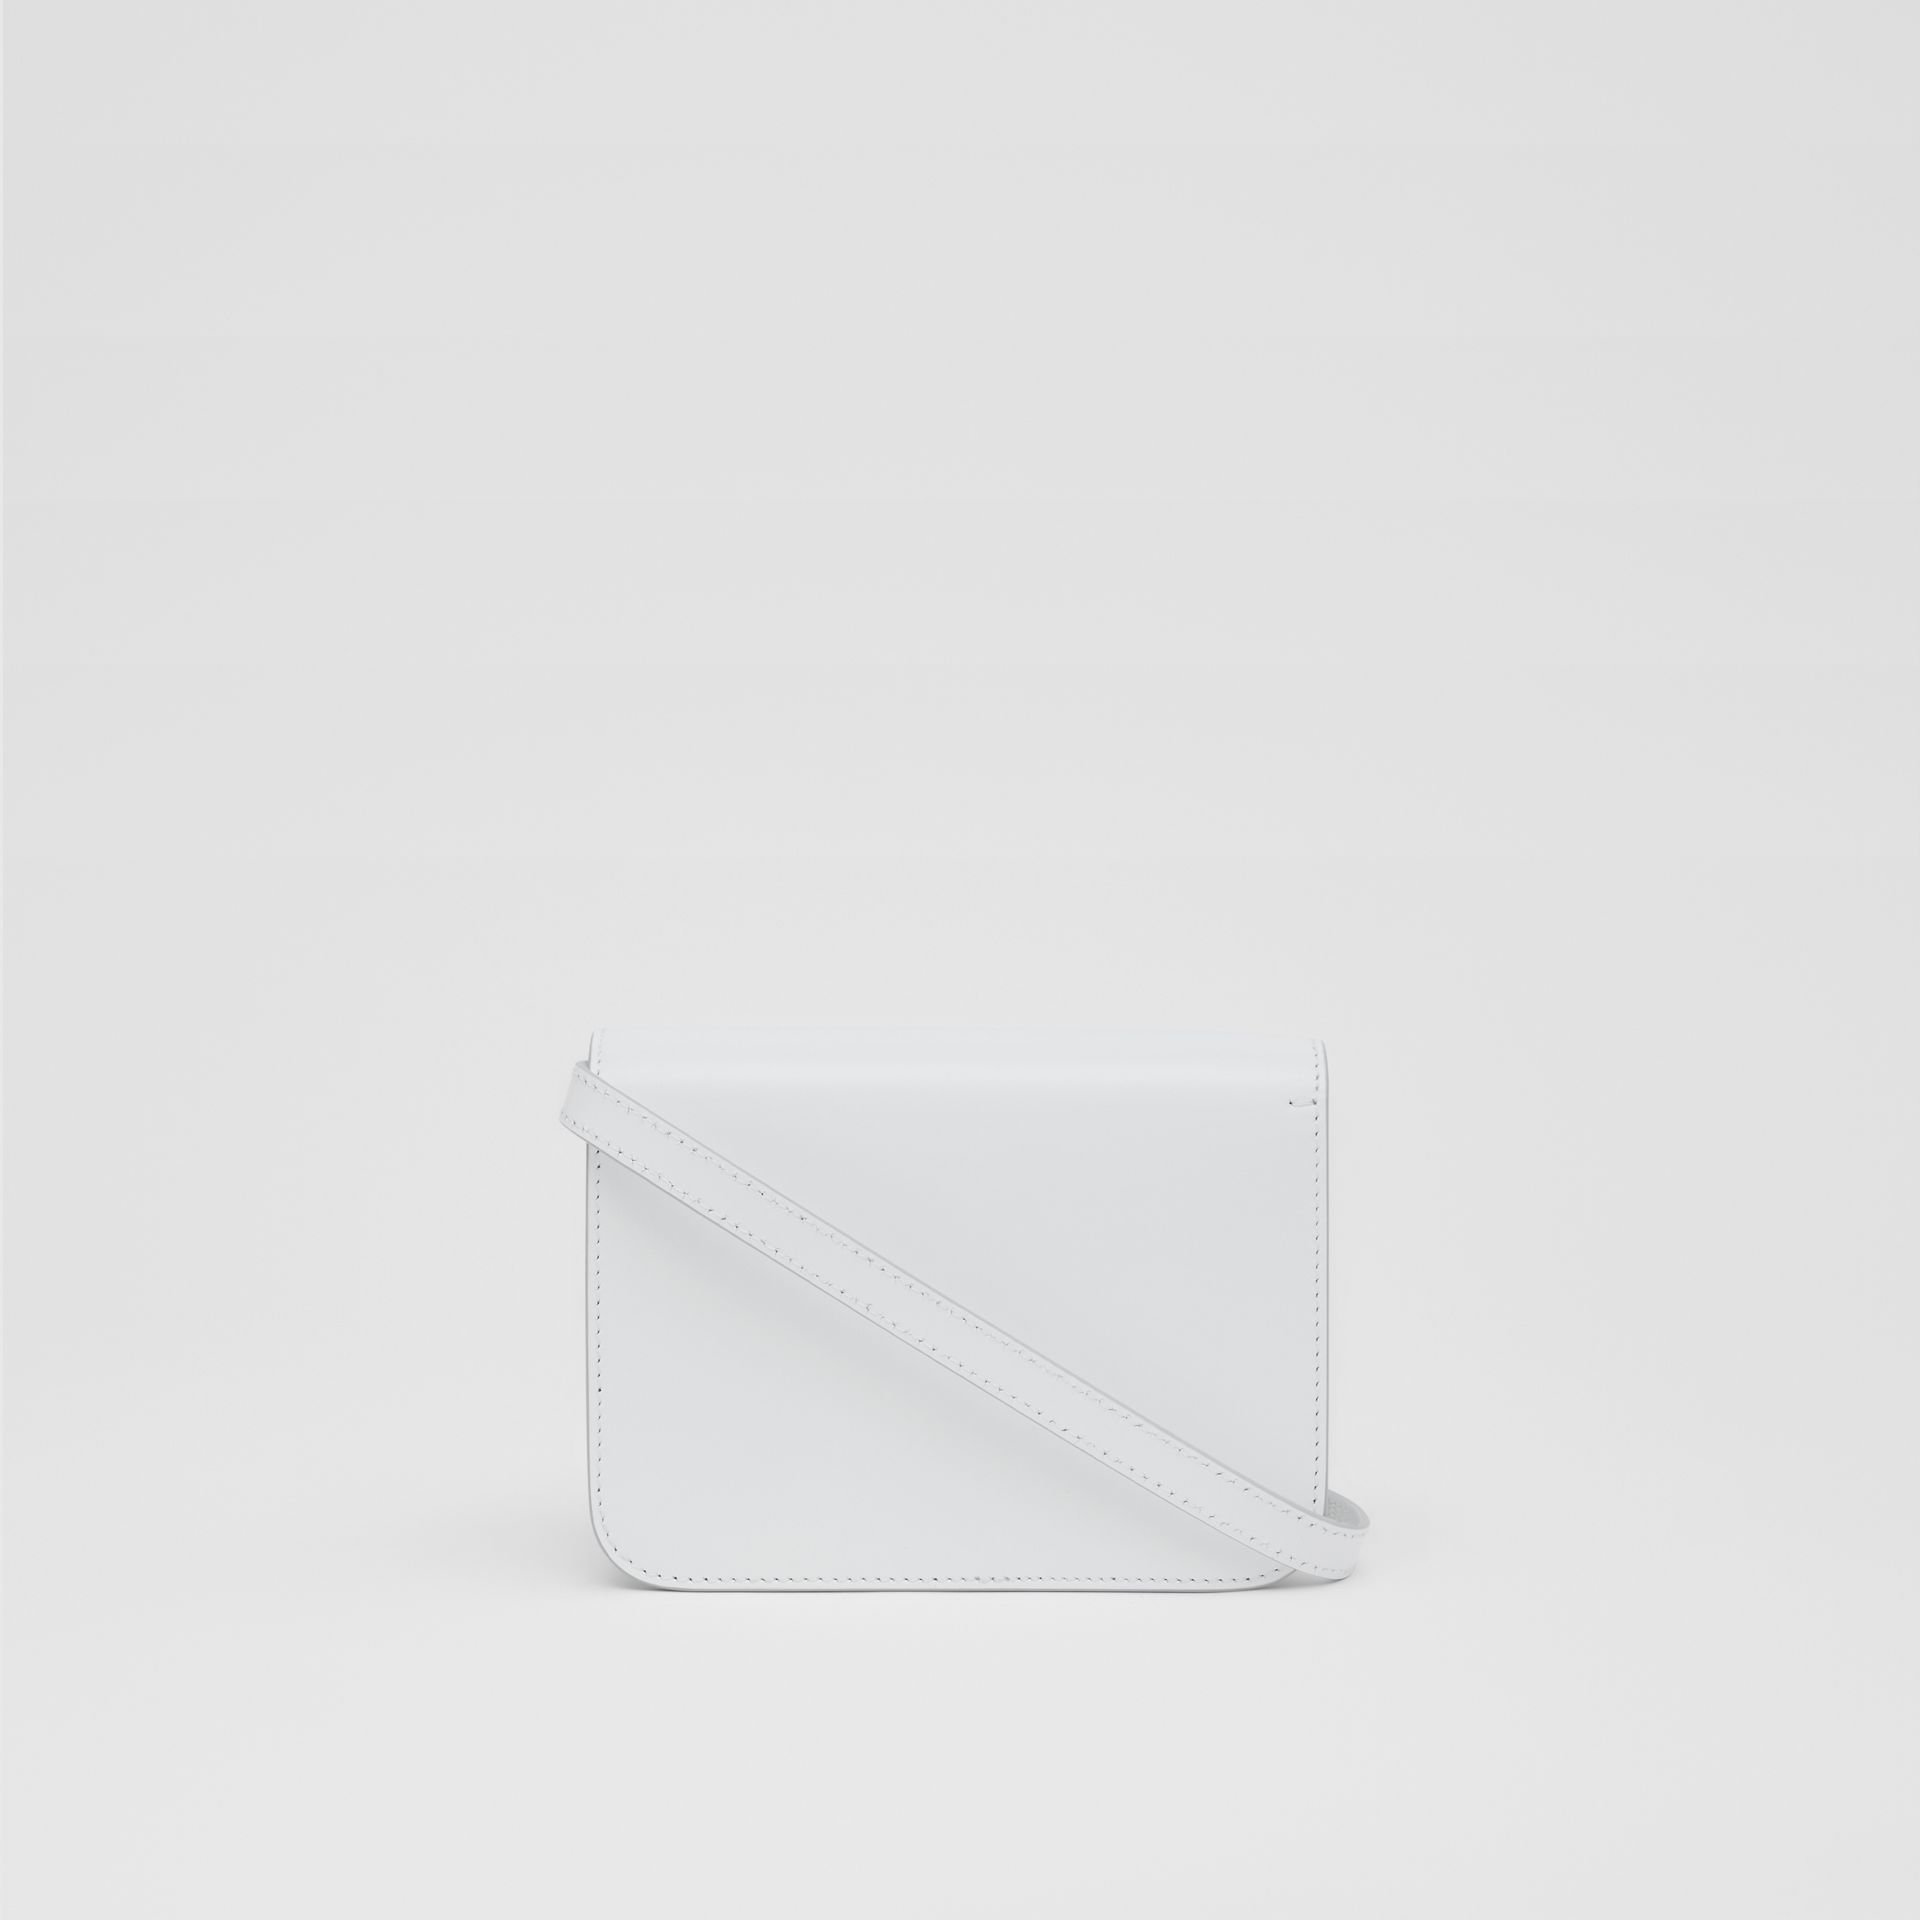 Mini Leather TB Bag in Optic White - Women | Burberry - gallery image 5